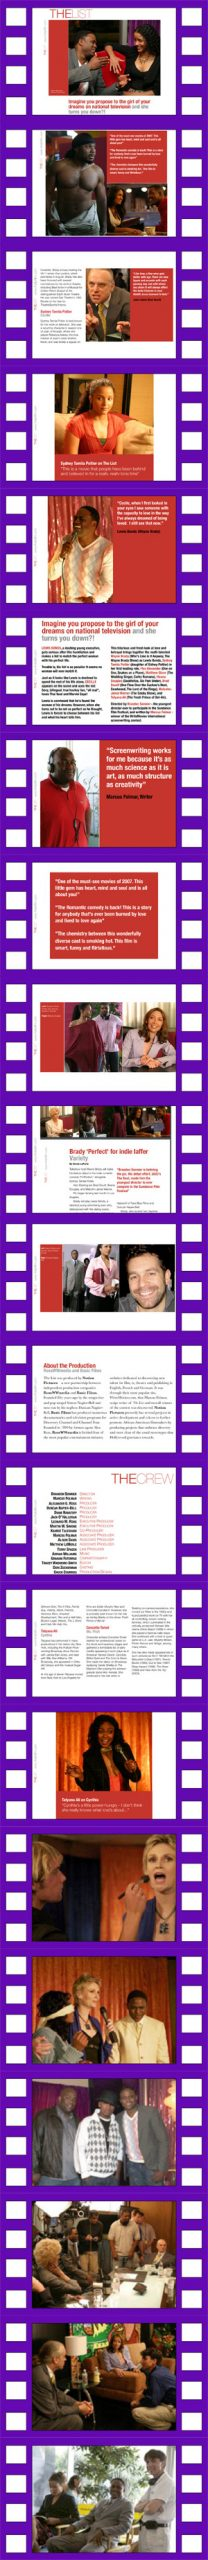 THE LIST motion picture - promotional images in film reel format